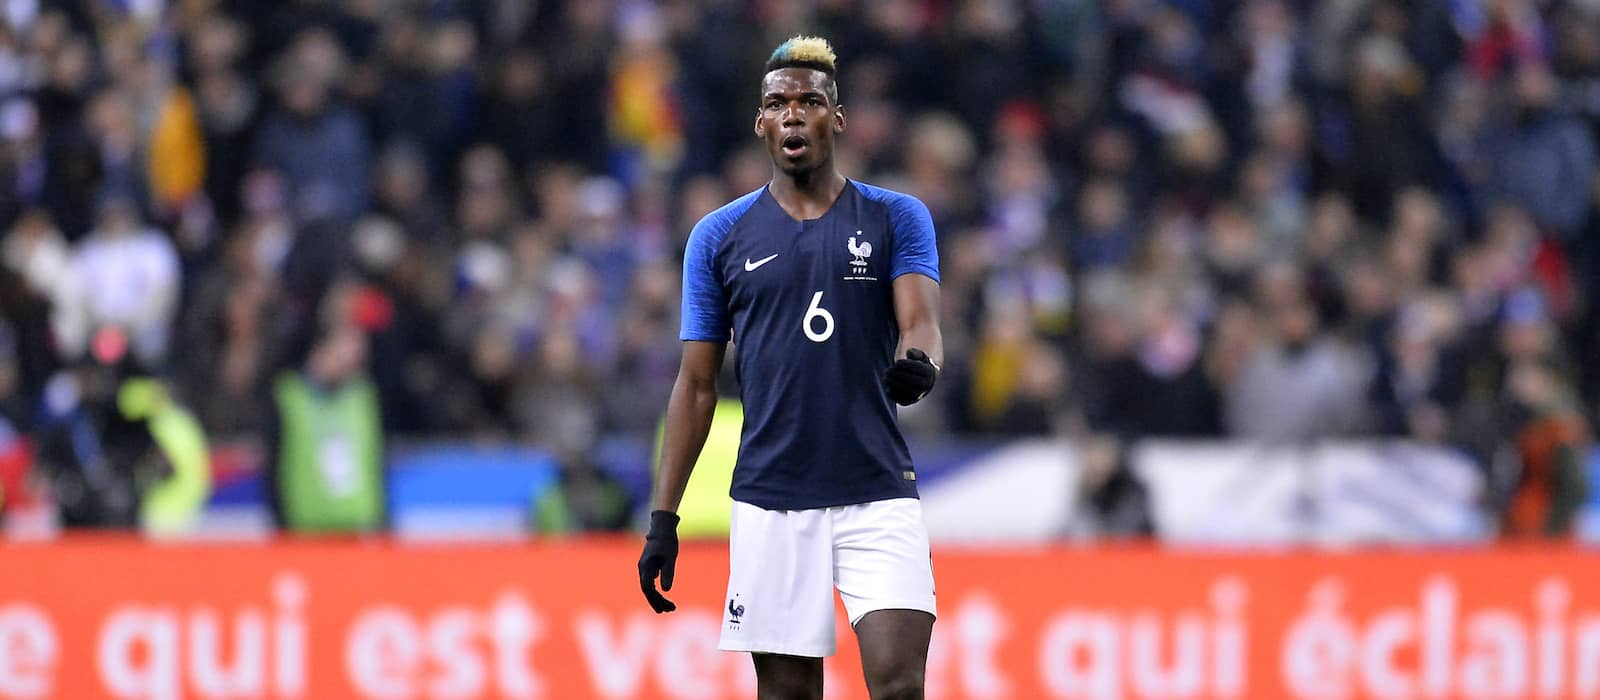 Samuel Umtiti: Paul Pogba has always been a leader